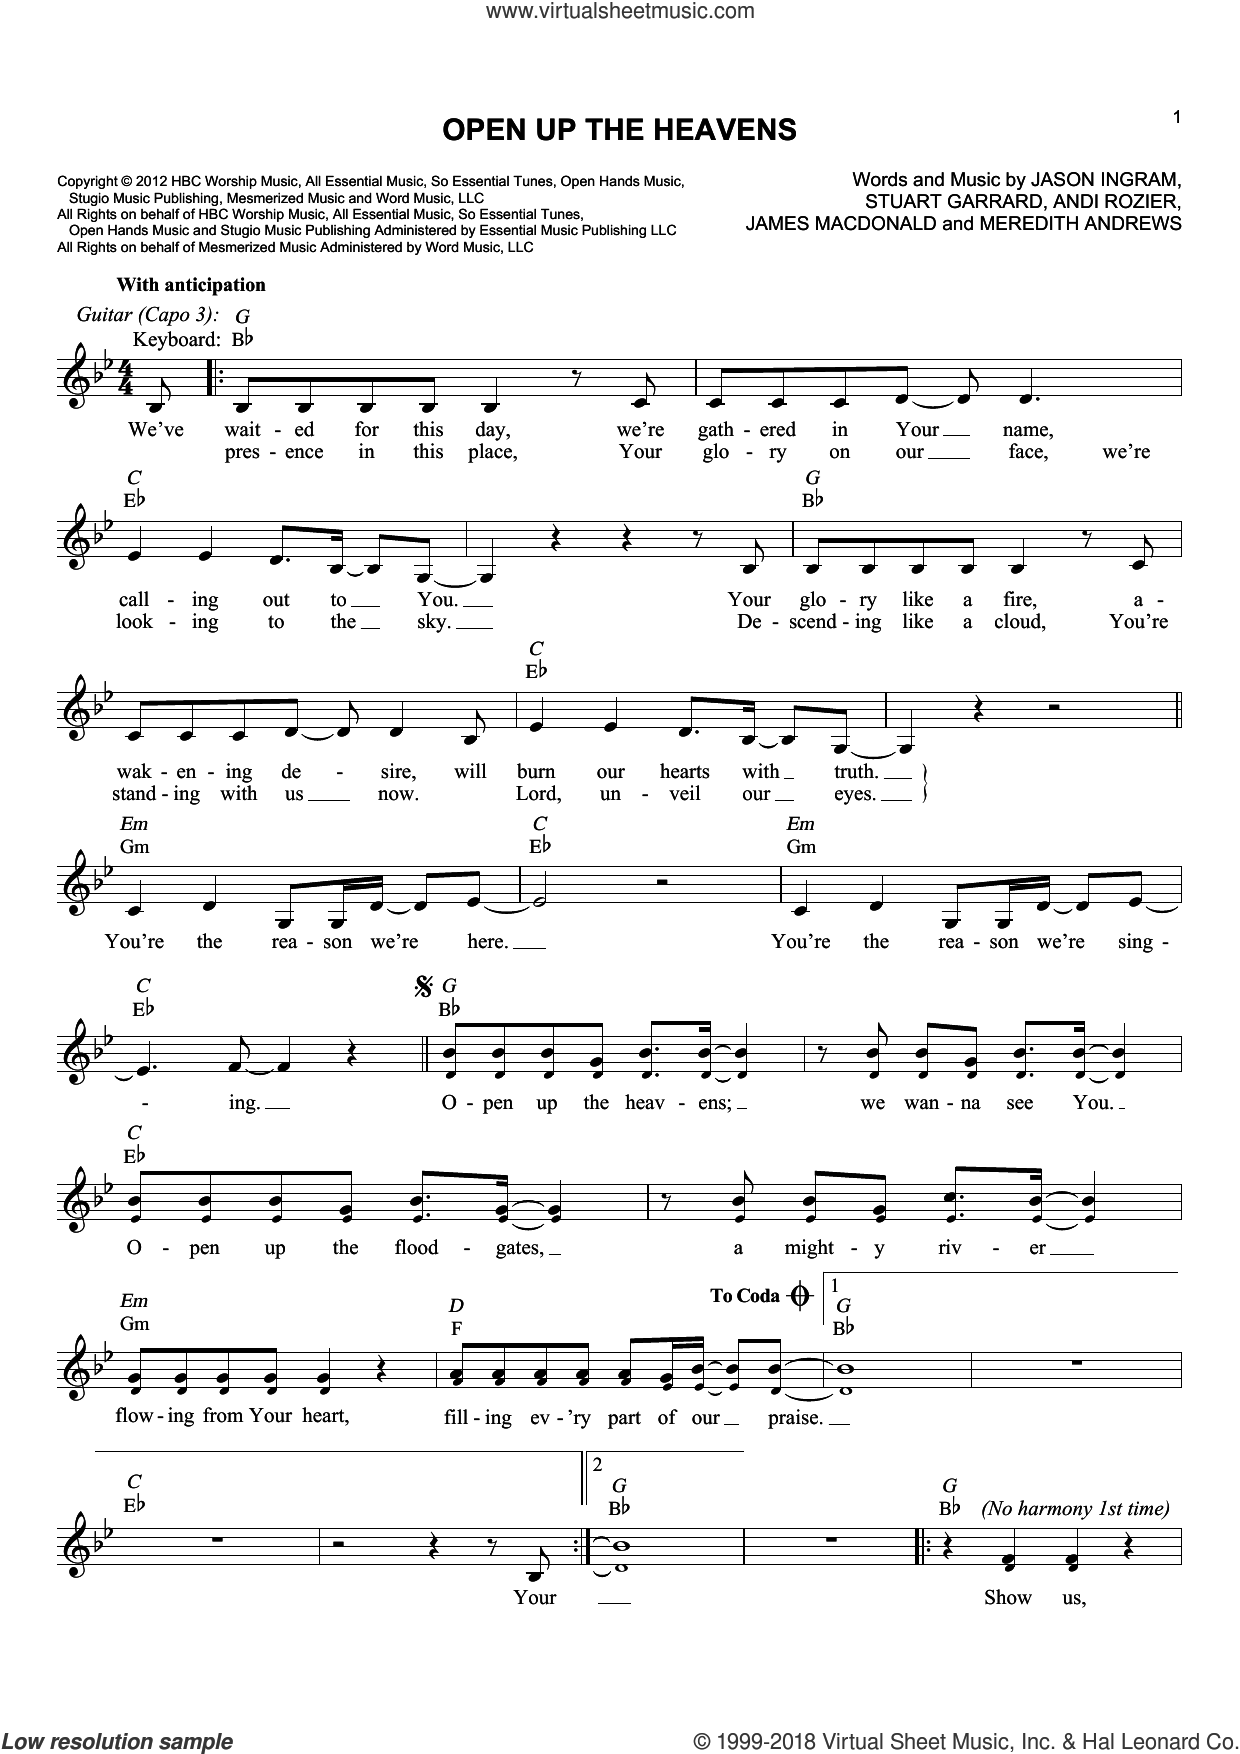 Open Up The Heavens sheet music for voice and other instruments (fake book) by Andi Rozier, James MacDonald, Jason Ingram, Meredith Andrews and Stuart Garrard, intermediate skill level